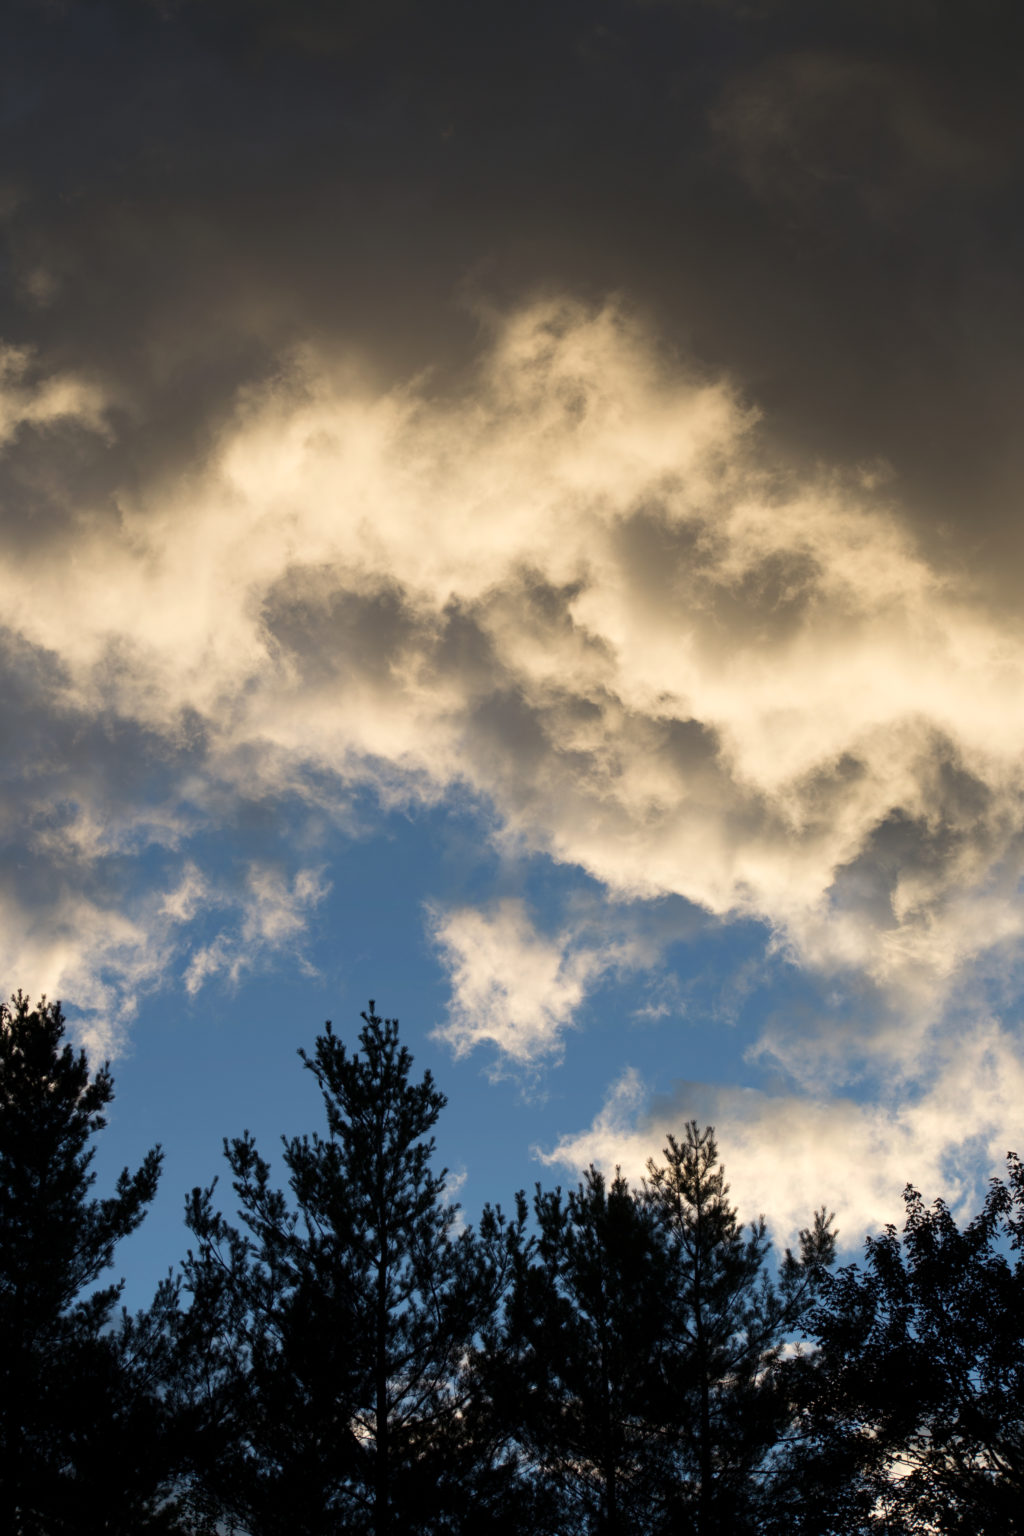 Soft Clouds Over Tree Silhouettes